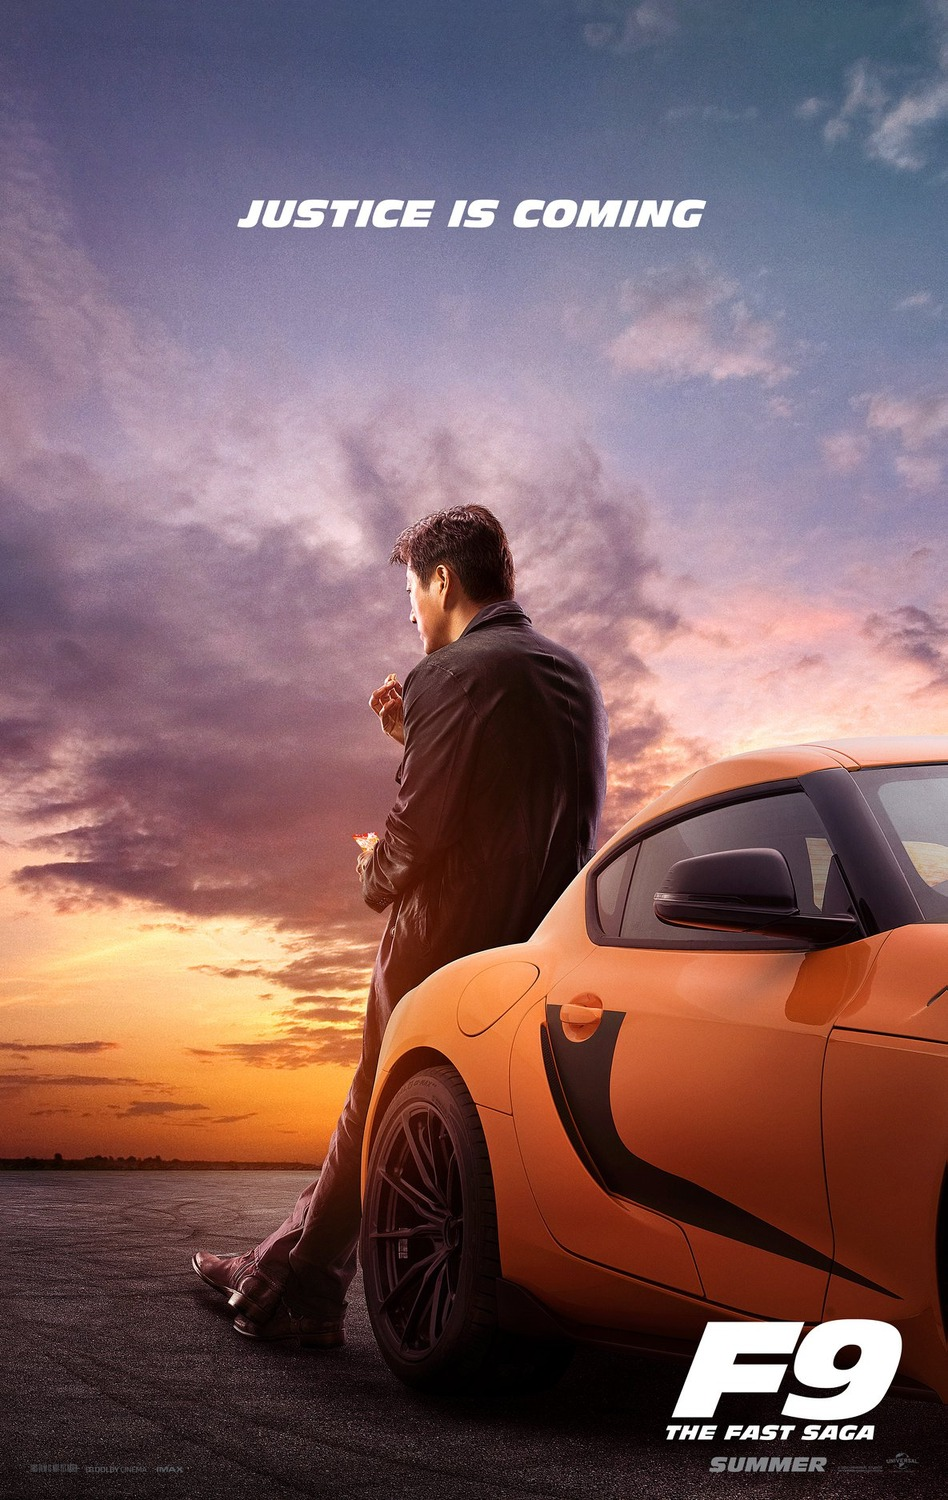 Fast And Furious 9 Han New Movie 2020 Poster 21x14 36x24 Silk Free Shipping Ebay